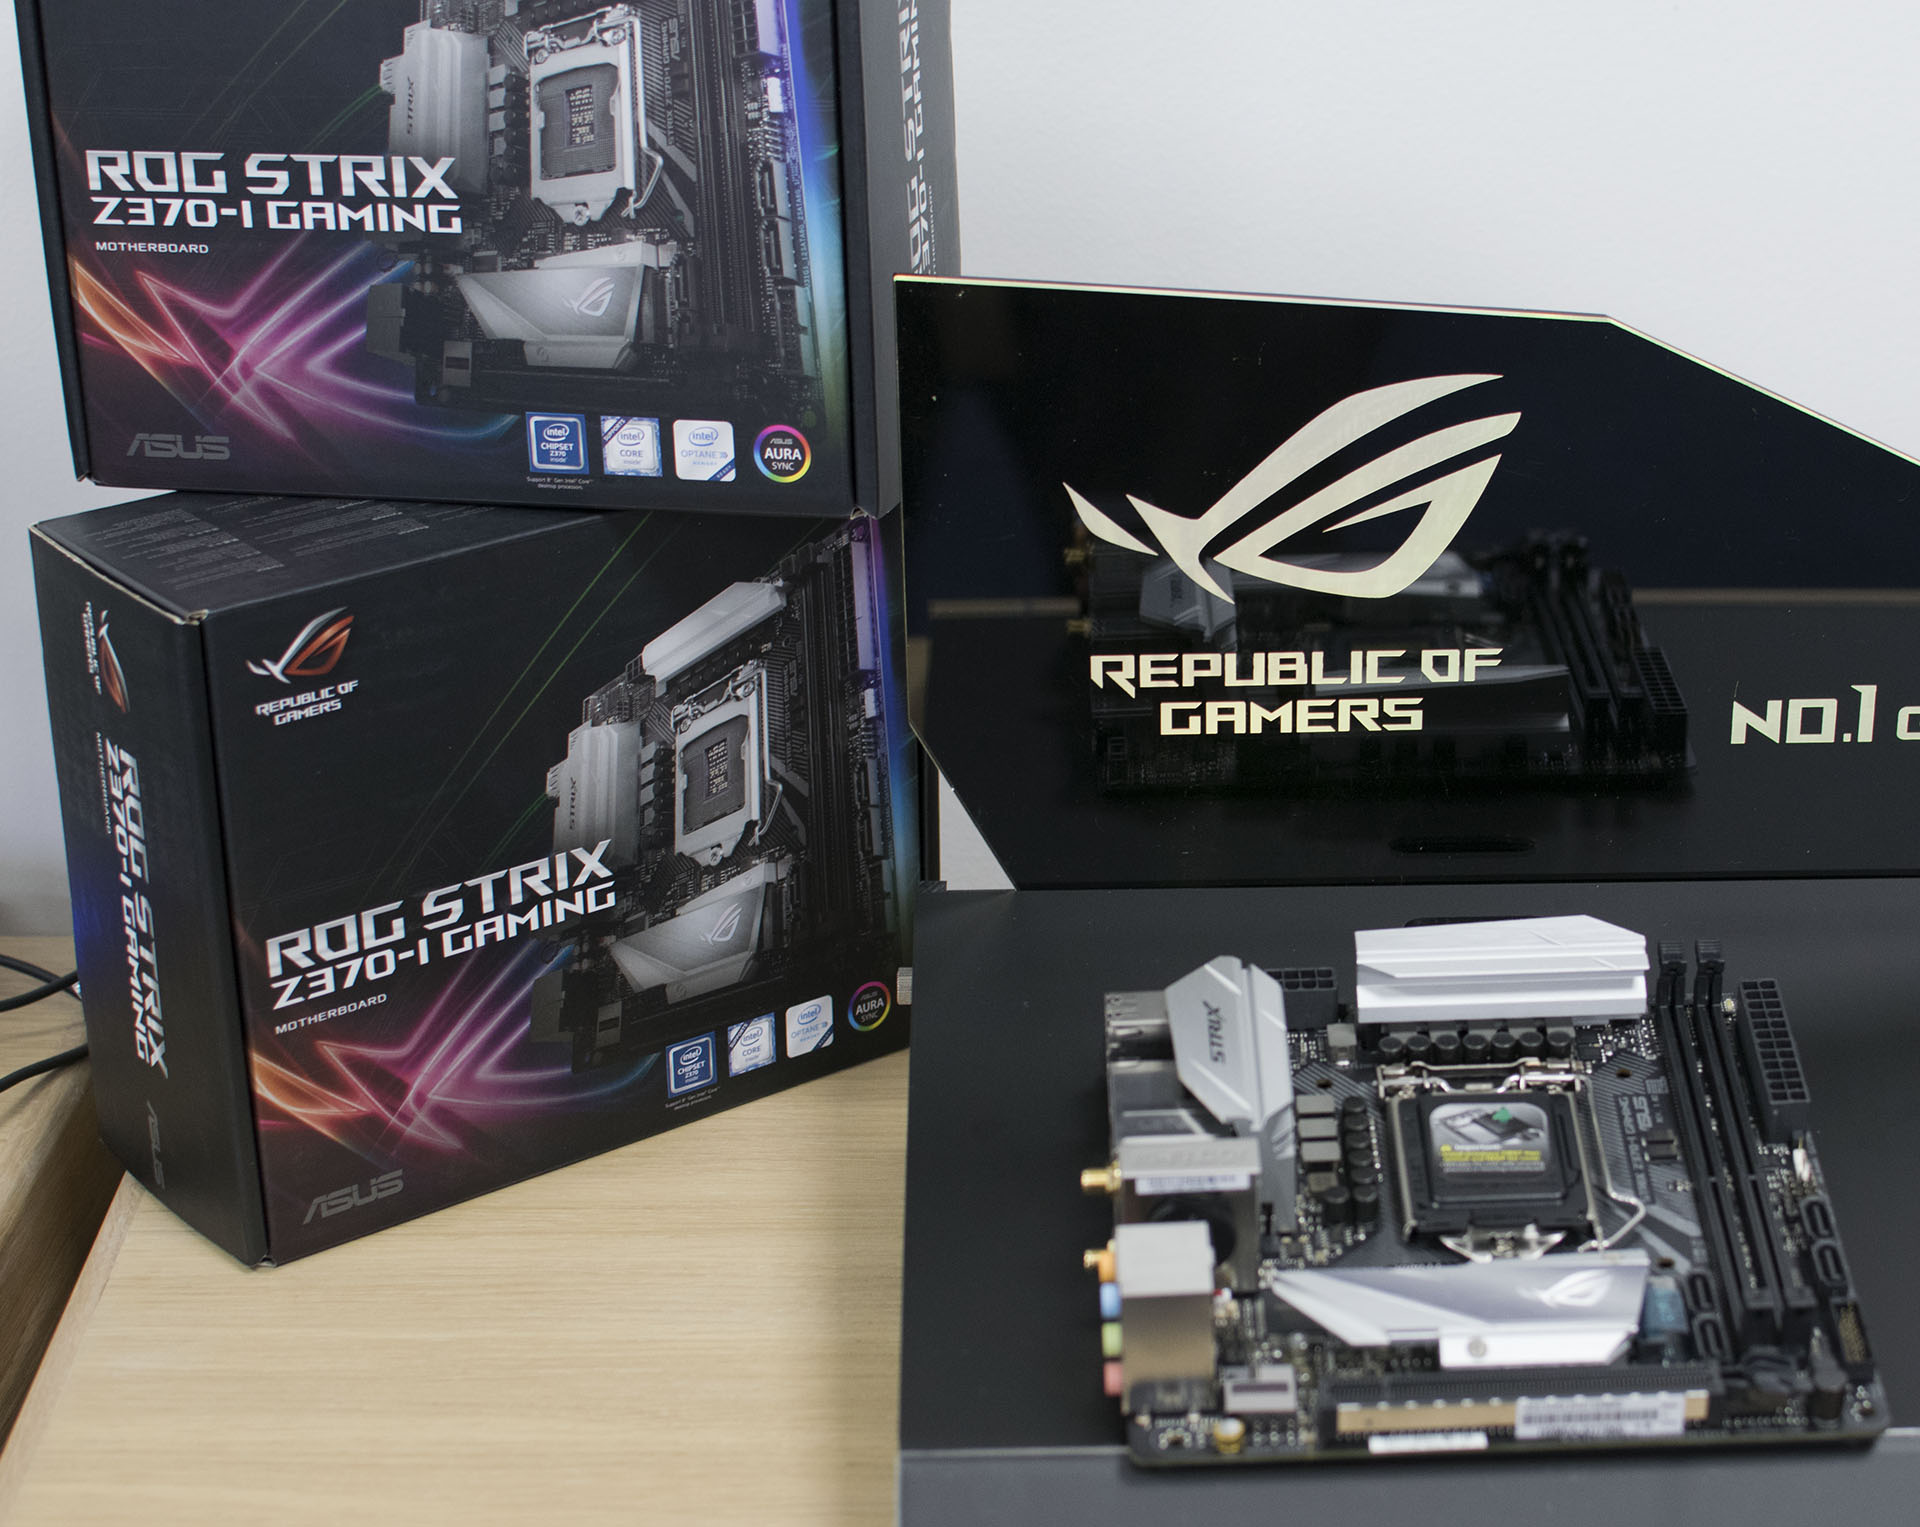 ASUS ROG STRIX Z370-I Gaming - Analyzing Z370 for Intel's